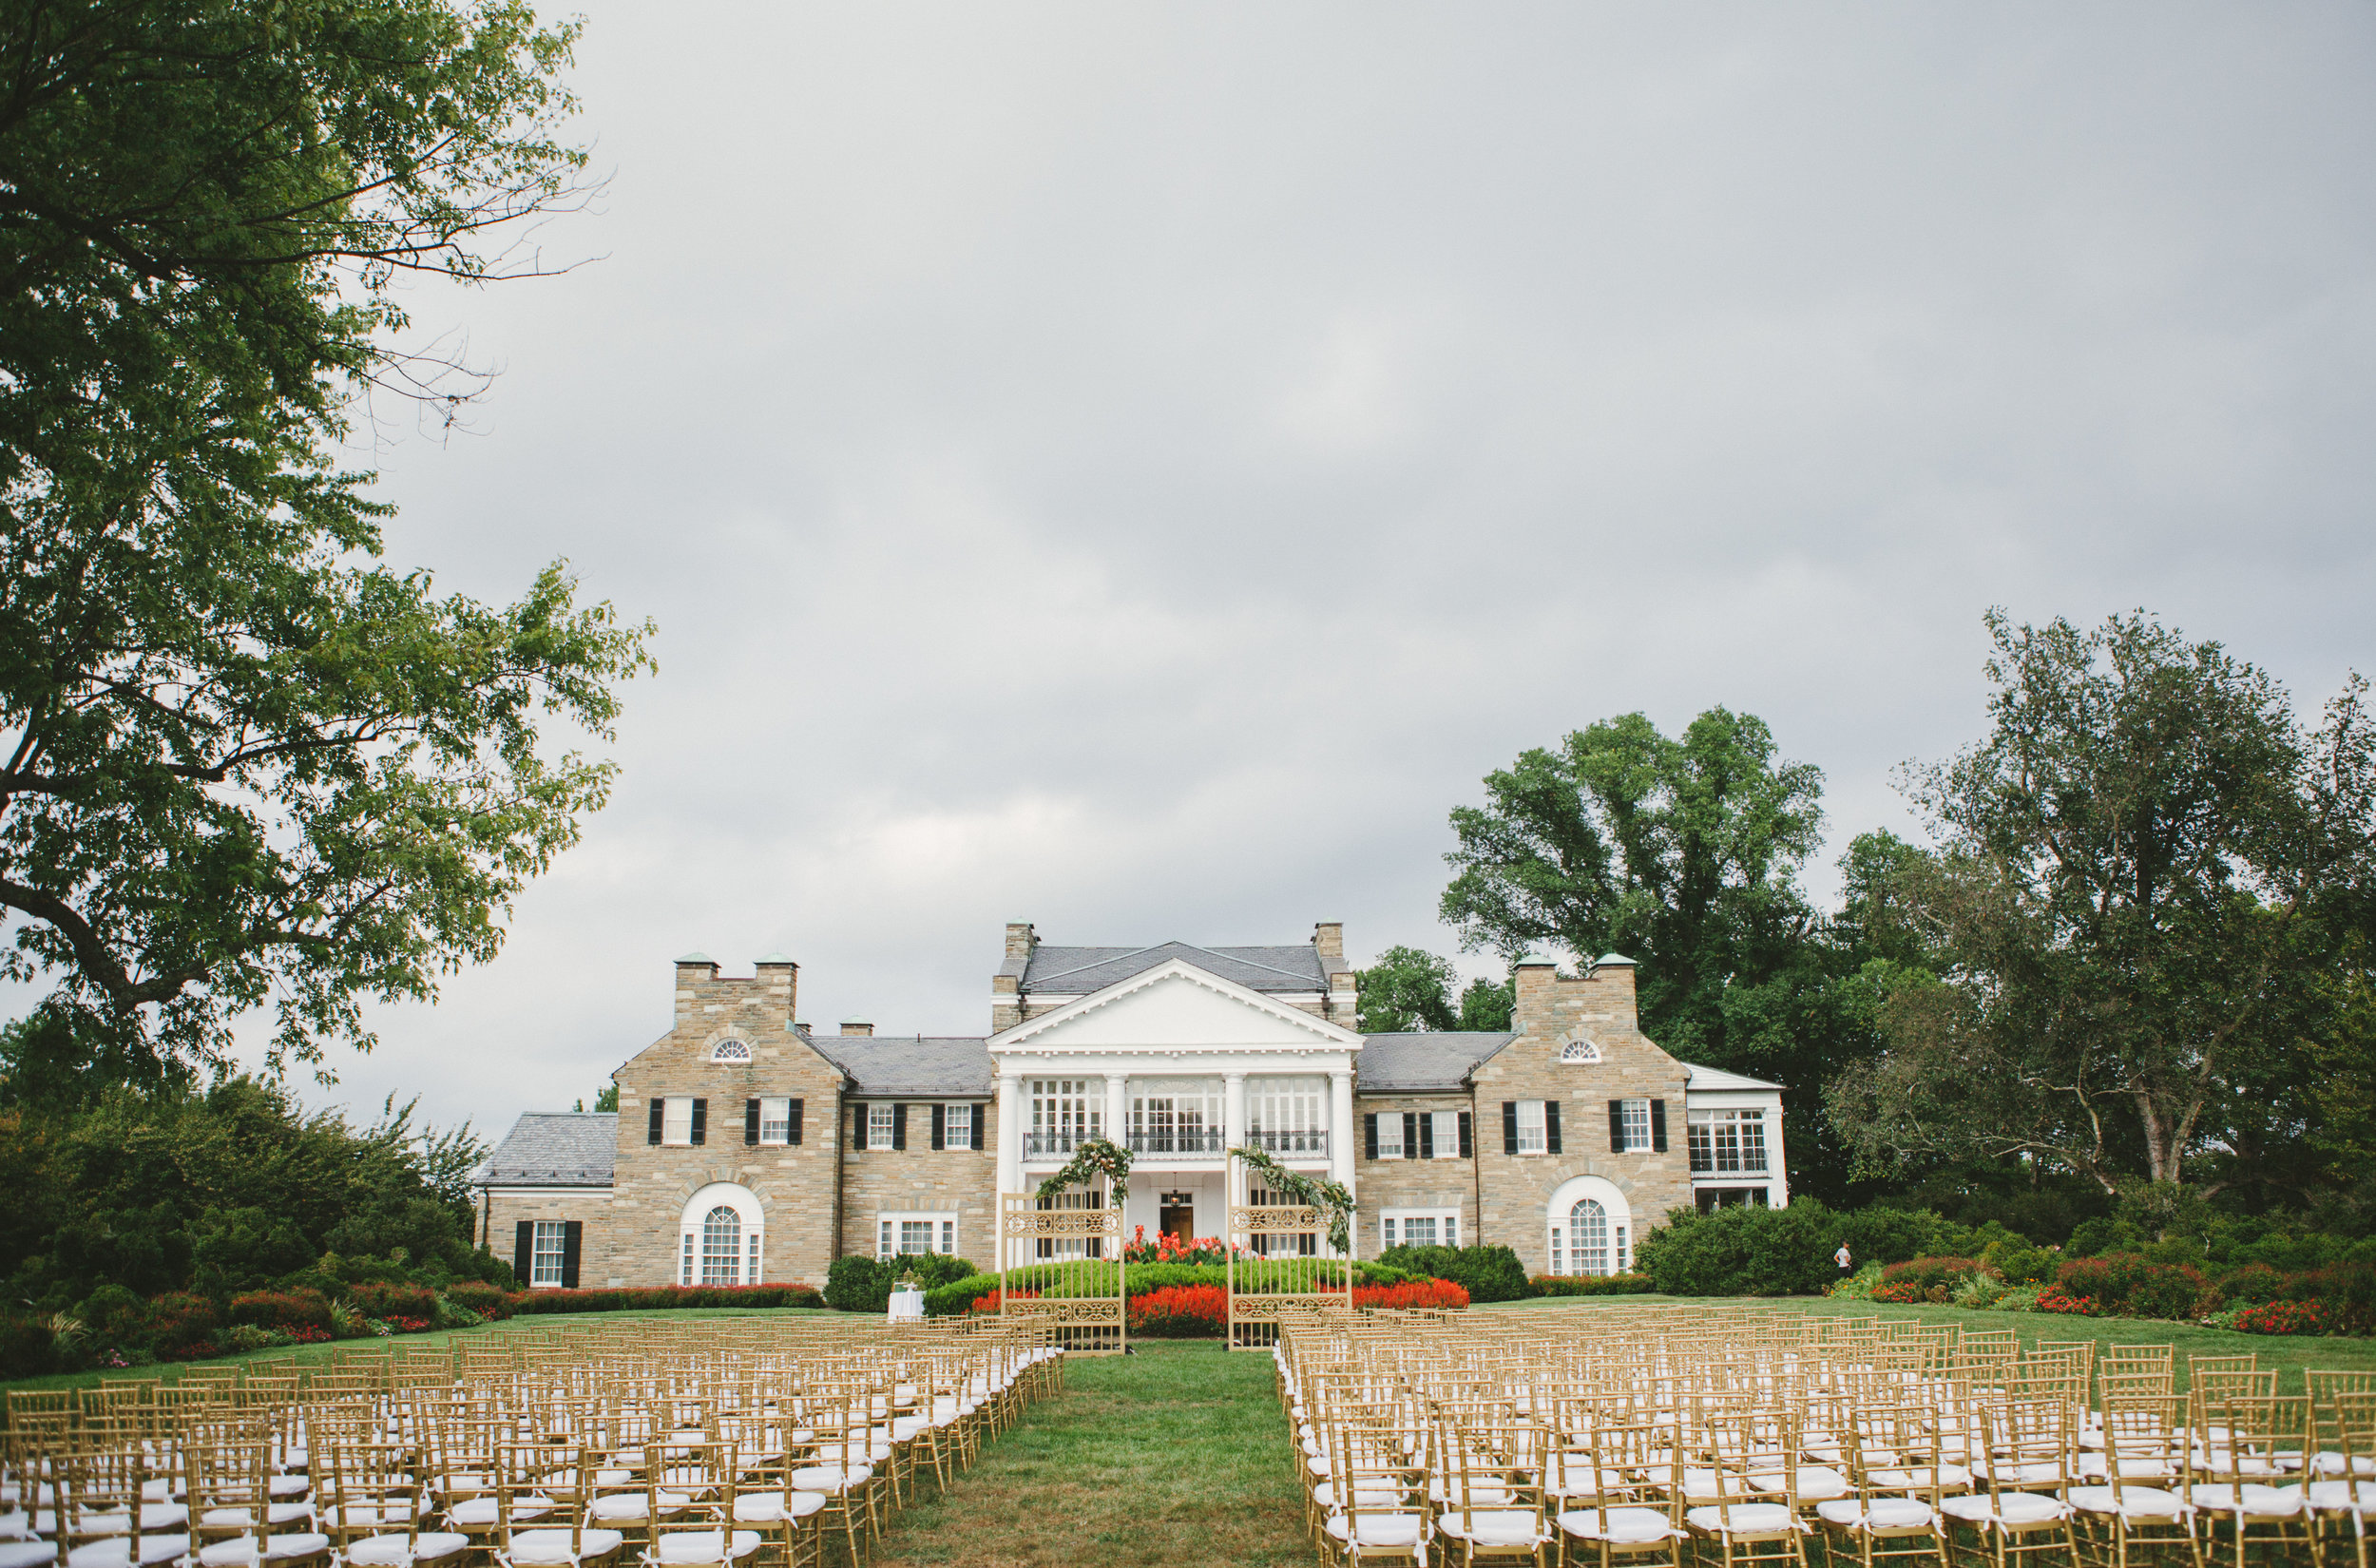 GLENVIEW MANSION WEDDING - INTIMATE WEDDING PHOTOGRAPHER - TWOTWENTY by CHI-CHI AGBIM-24.jpg